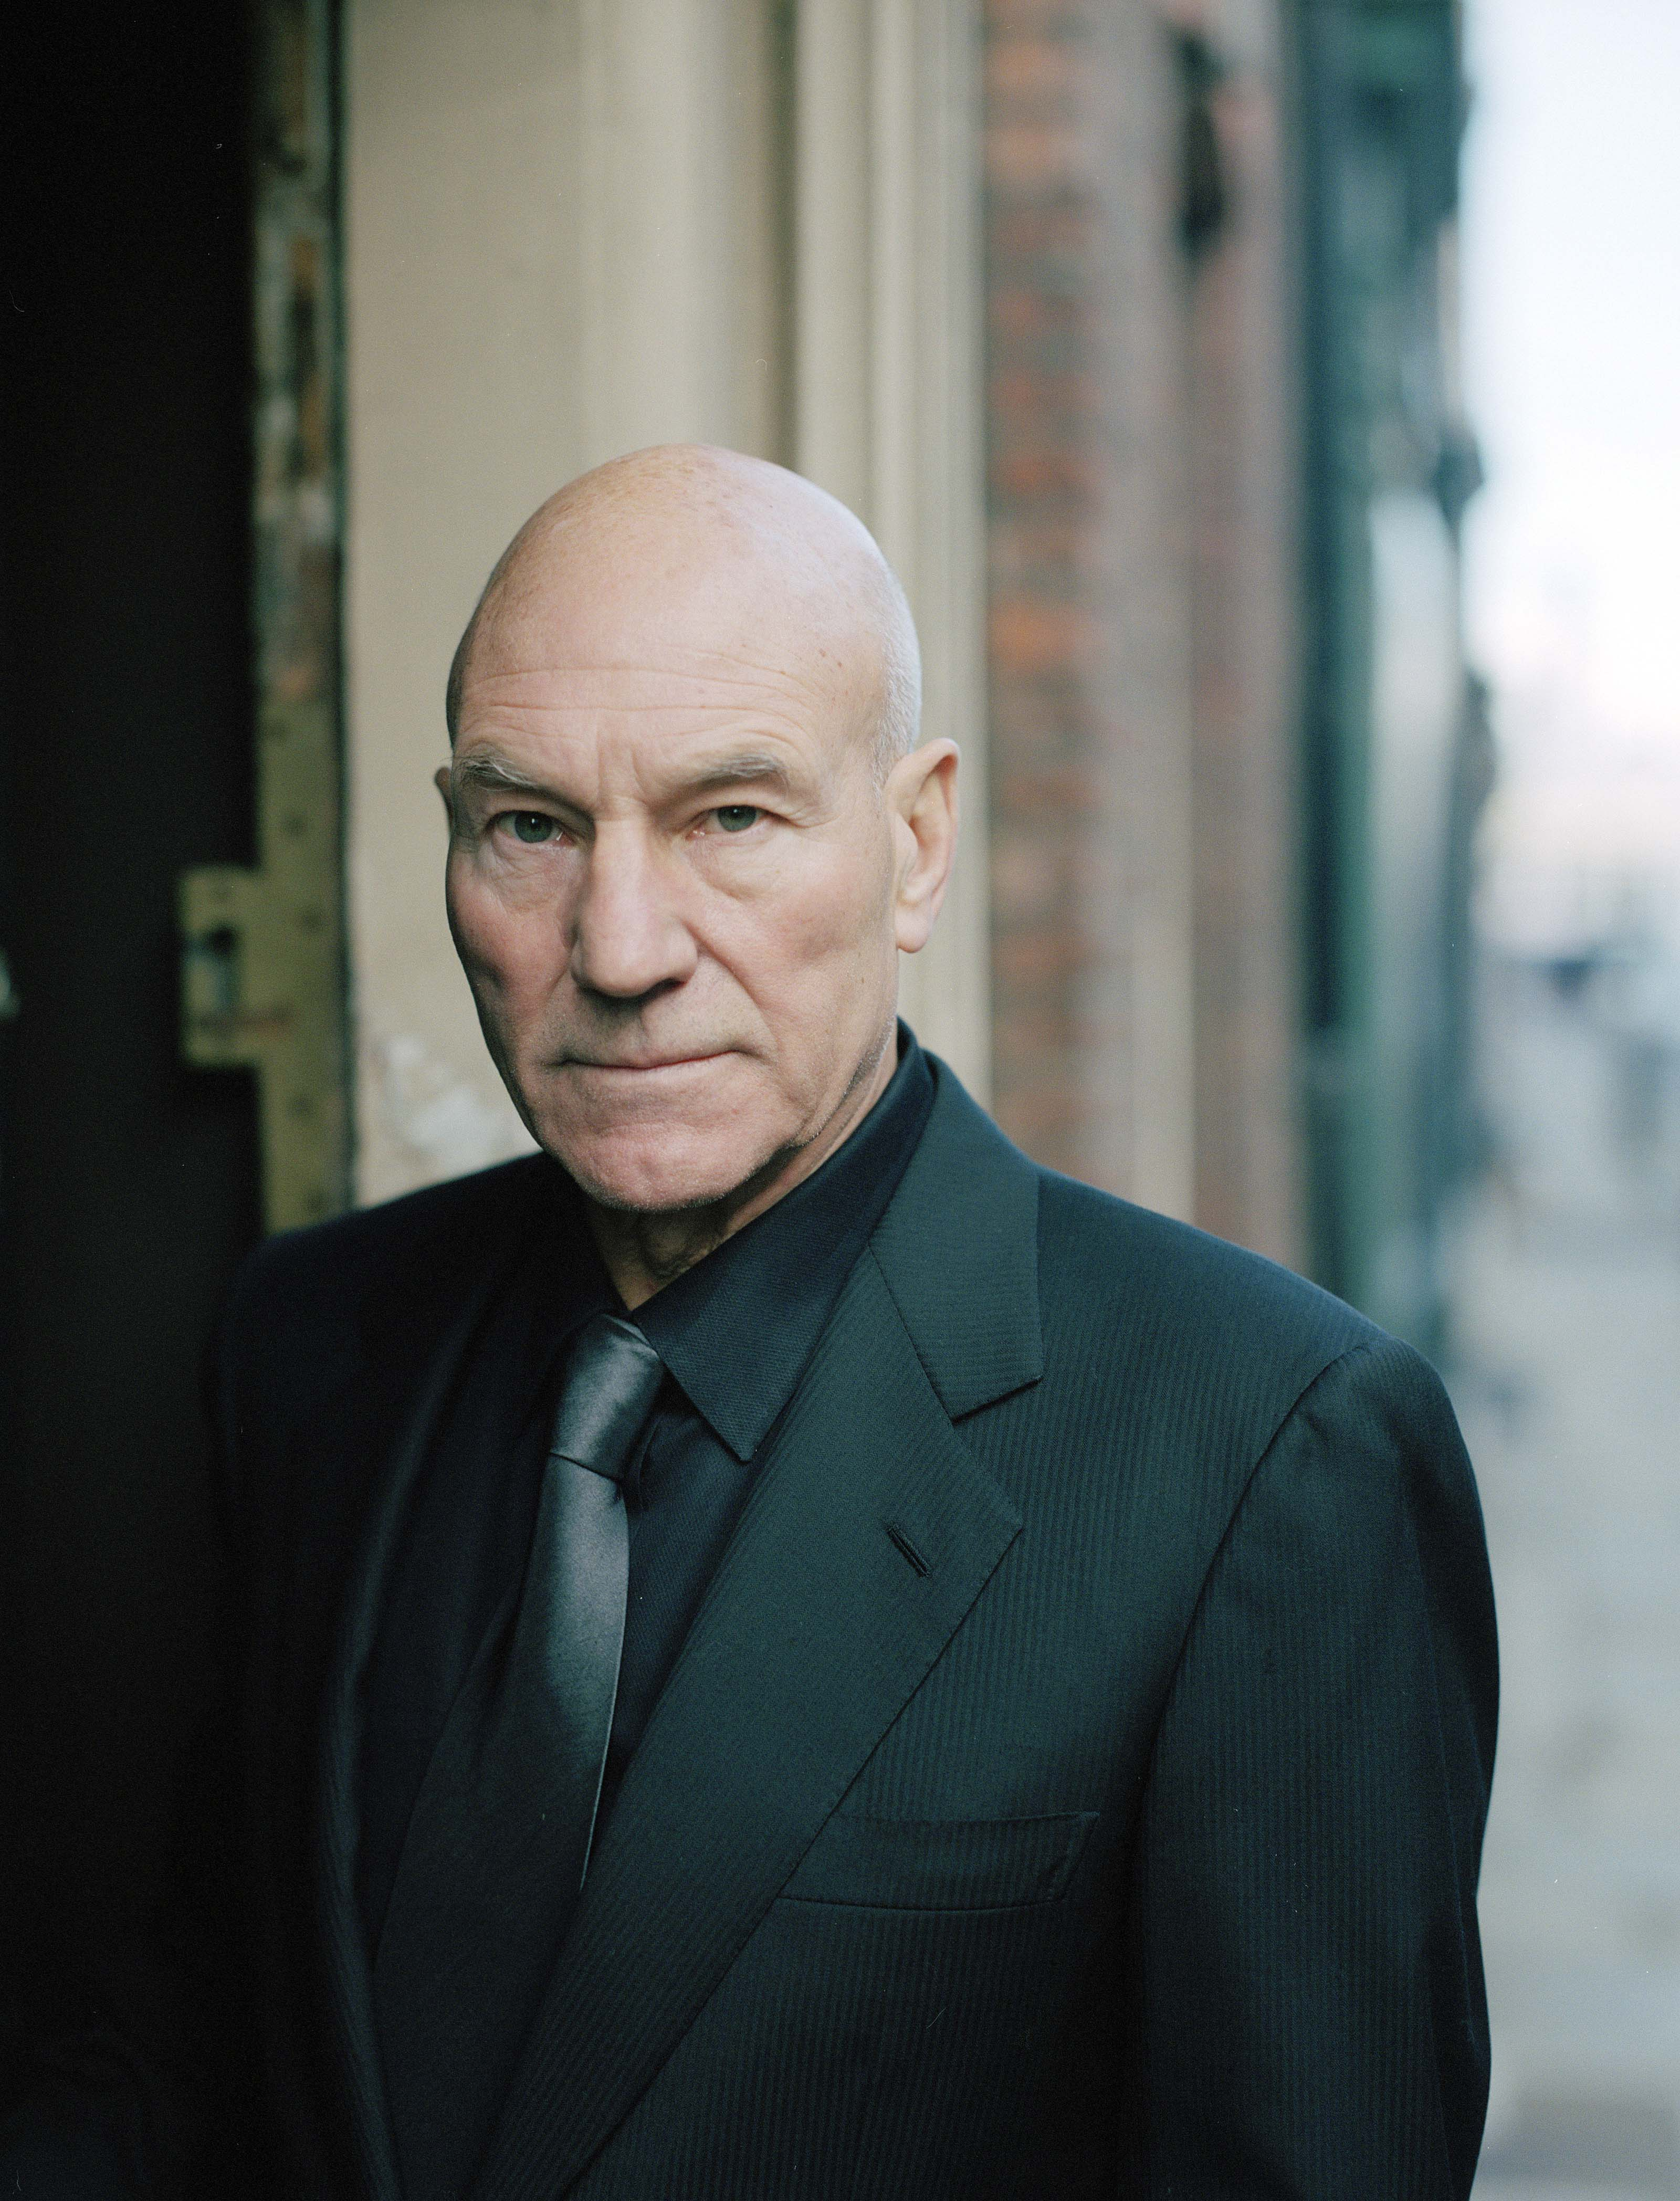 patrick stewart young